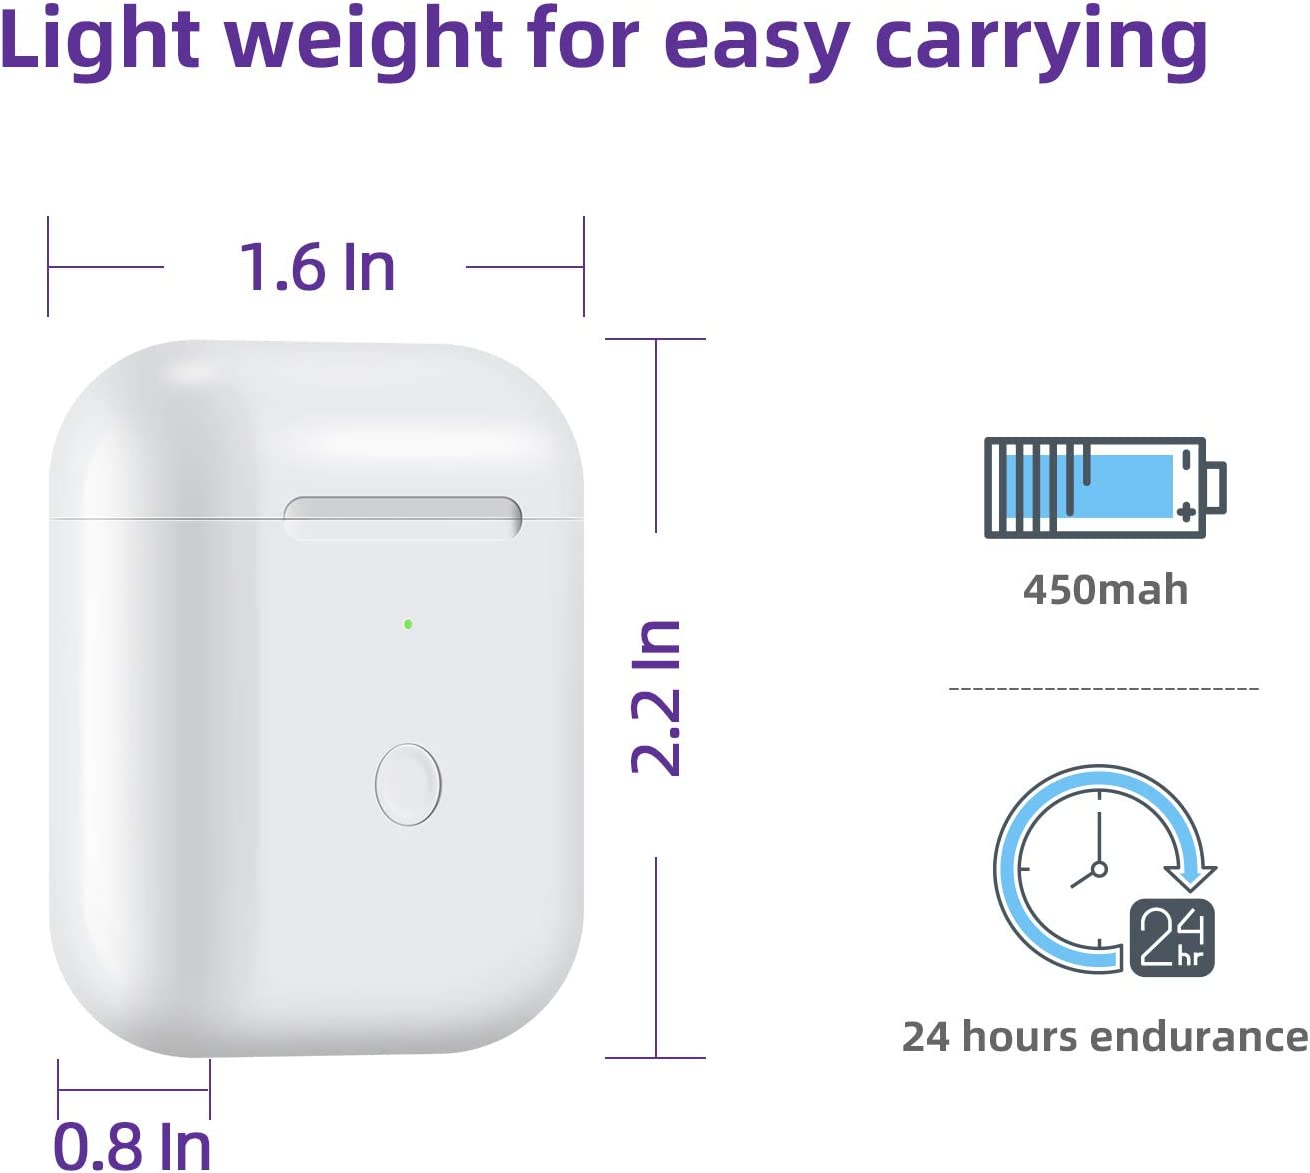 Wireless Airpods Charging Case with Bluetooth Pairing Sync Button,Air pods Charger Case Replacement,White JinStyles Compatible with AirPods 1 2